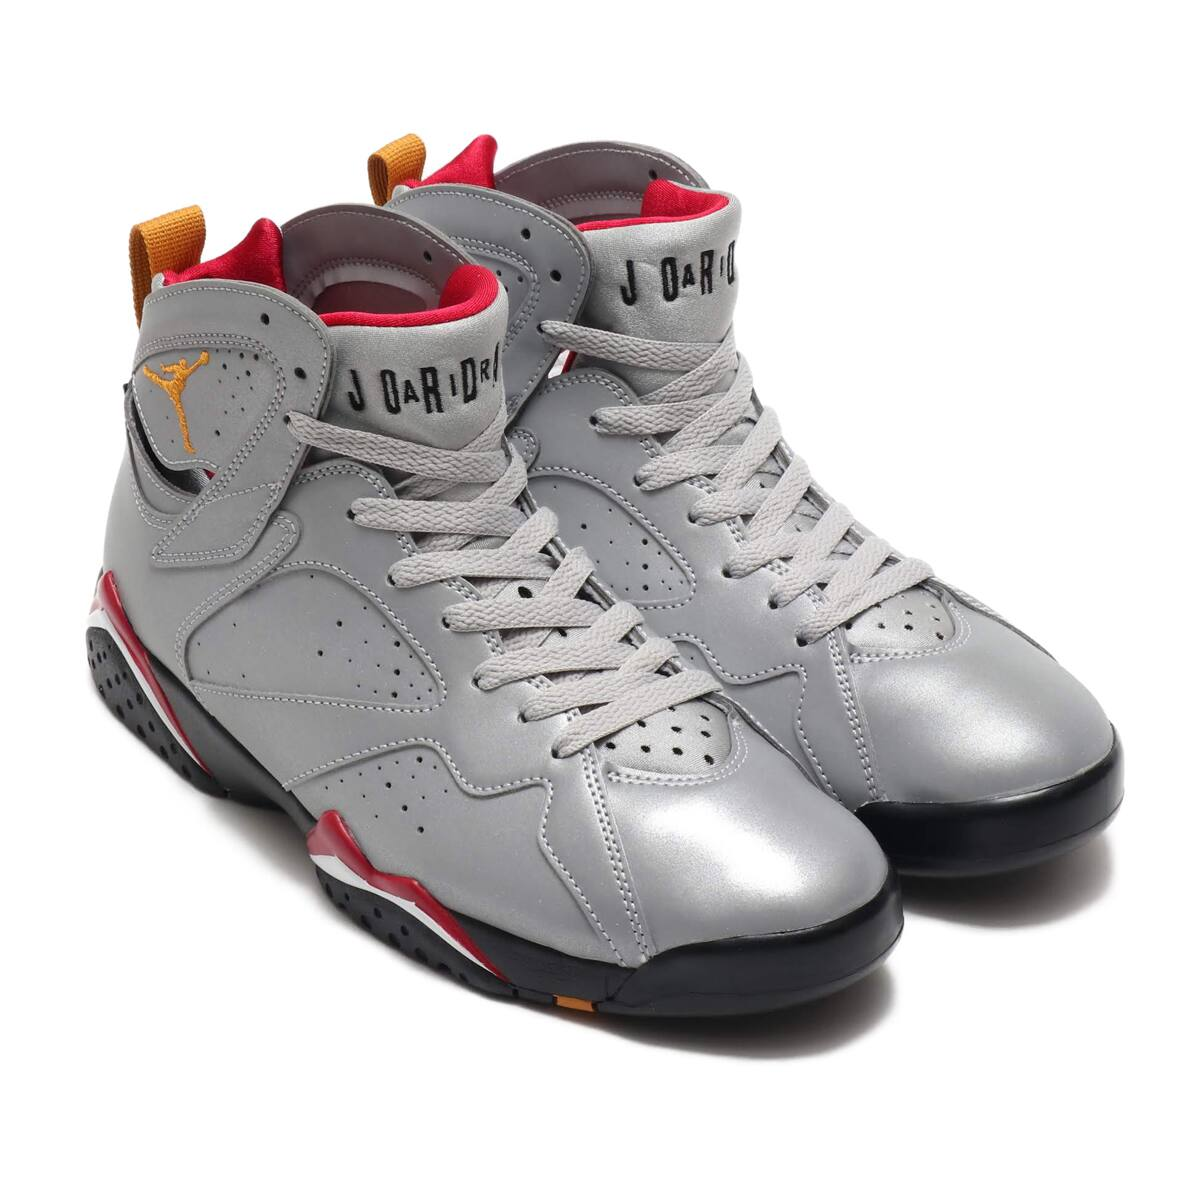 NIKE AIR JORDAN 7 RETRO SP REFLECT SILVER/BRONZE-CARDINAL RED-BLACK 19SU-S_photo_large